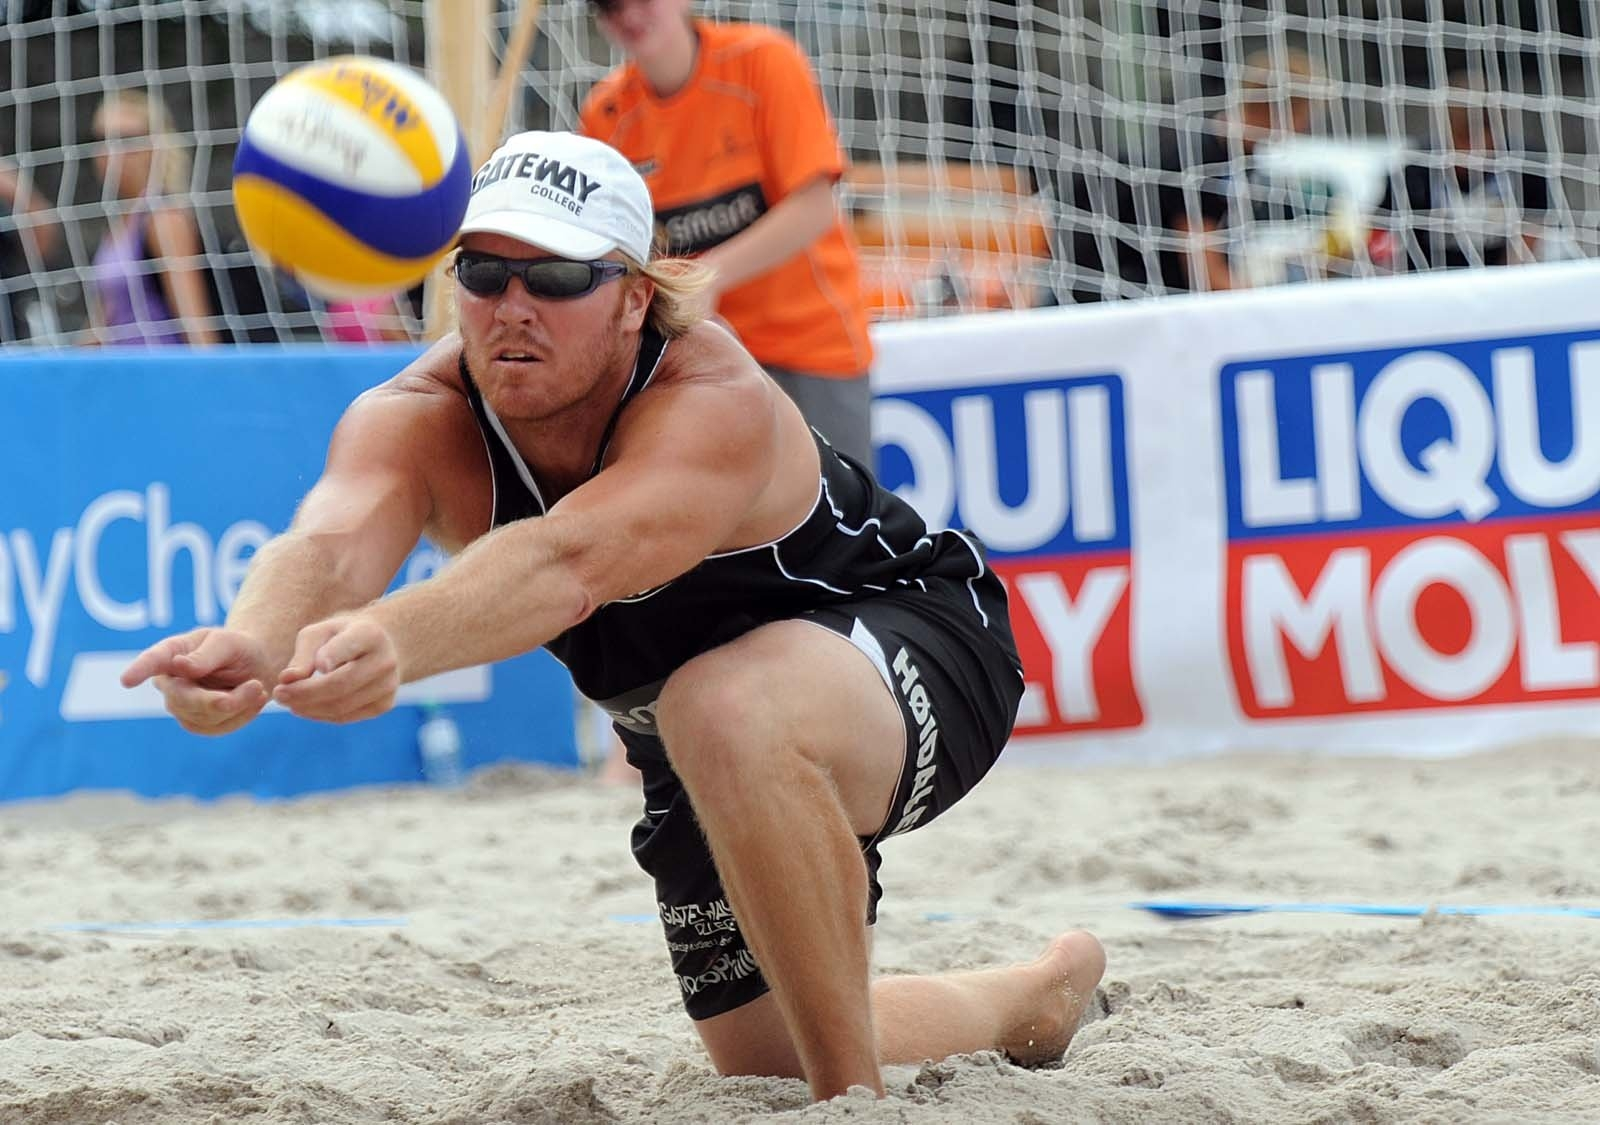 A two-time Olympian, Hoidalen last competed internationally in 2012 (Photocredit: FIVB)